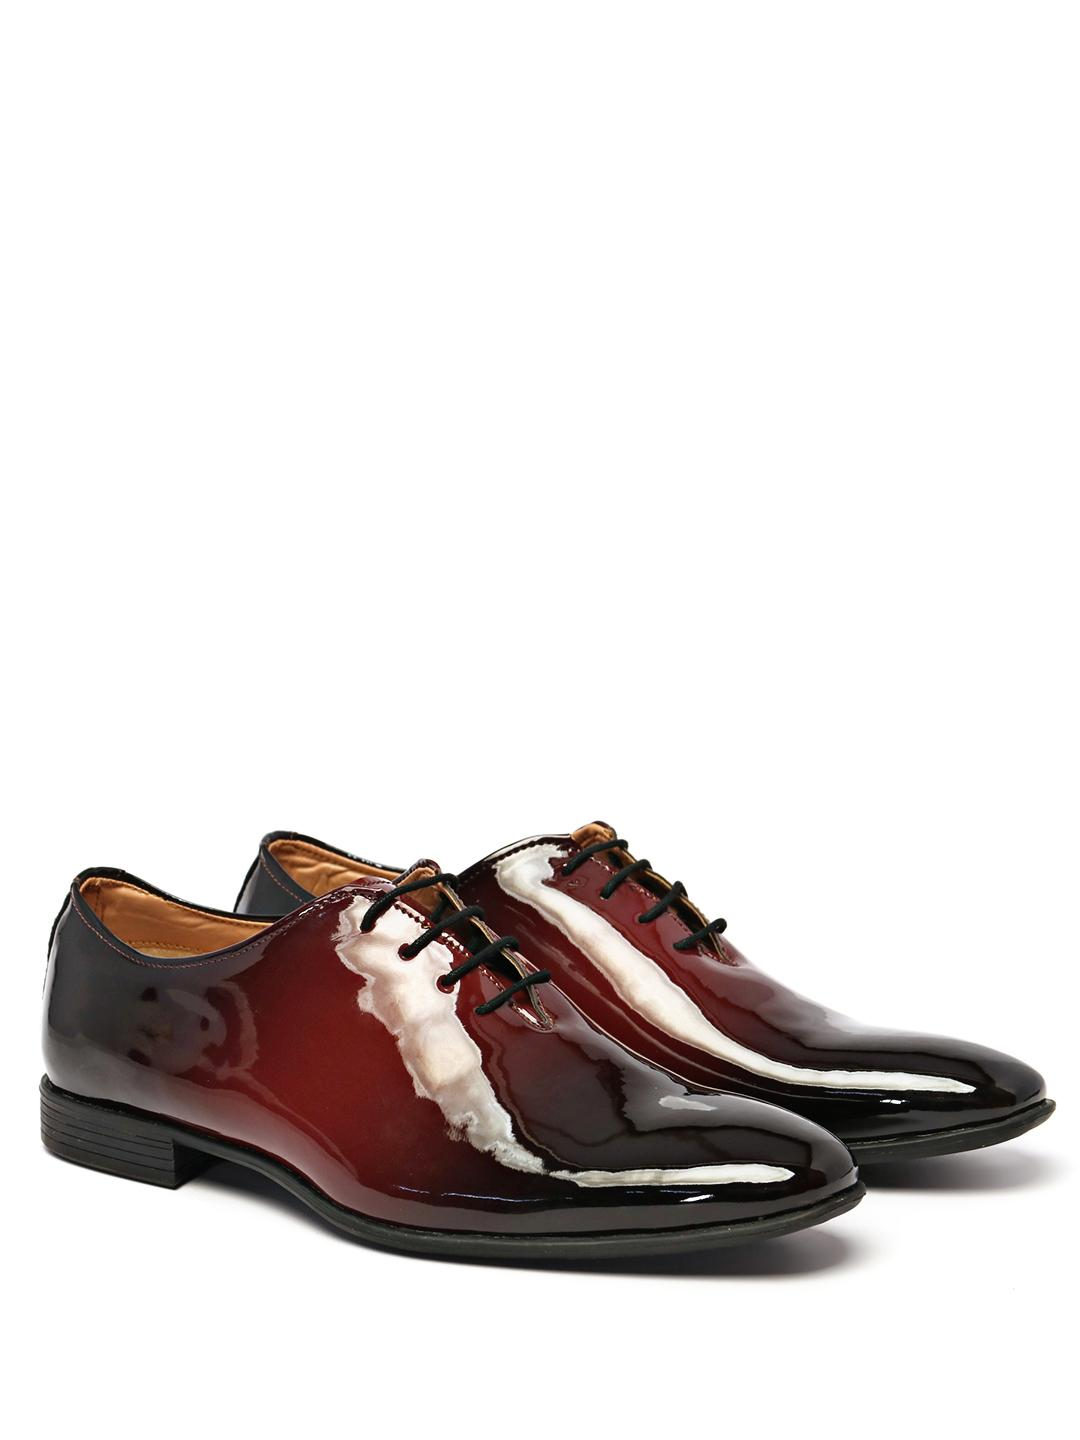 KLEAT Multi Two-Tone Patent Oxford Shoes 1